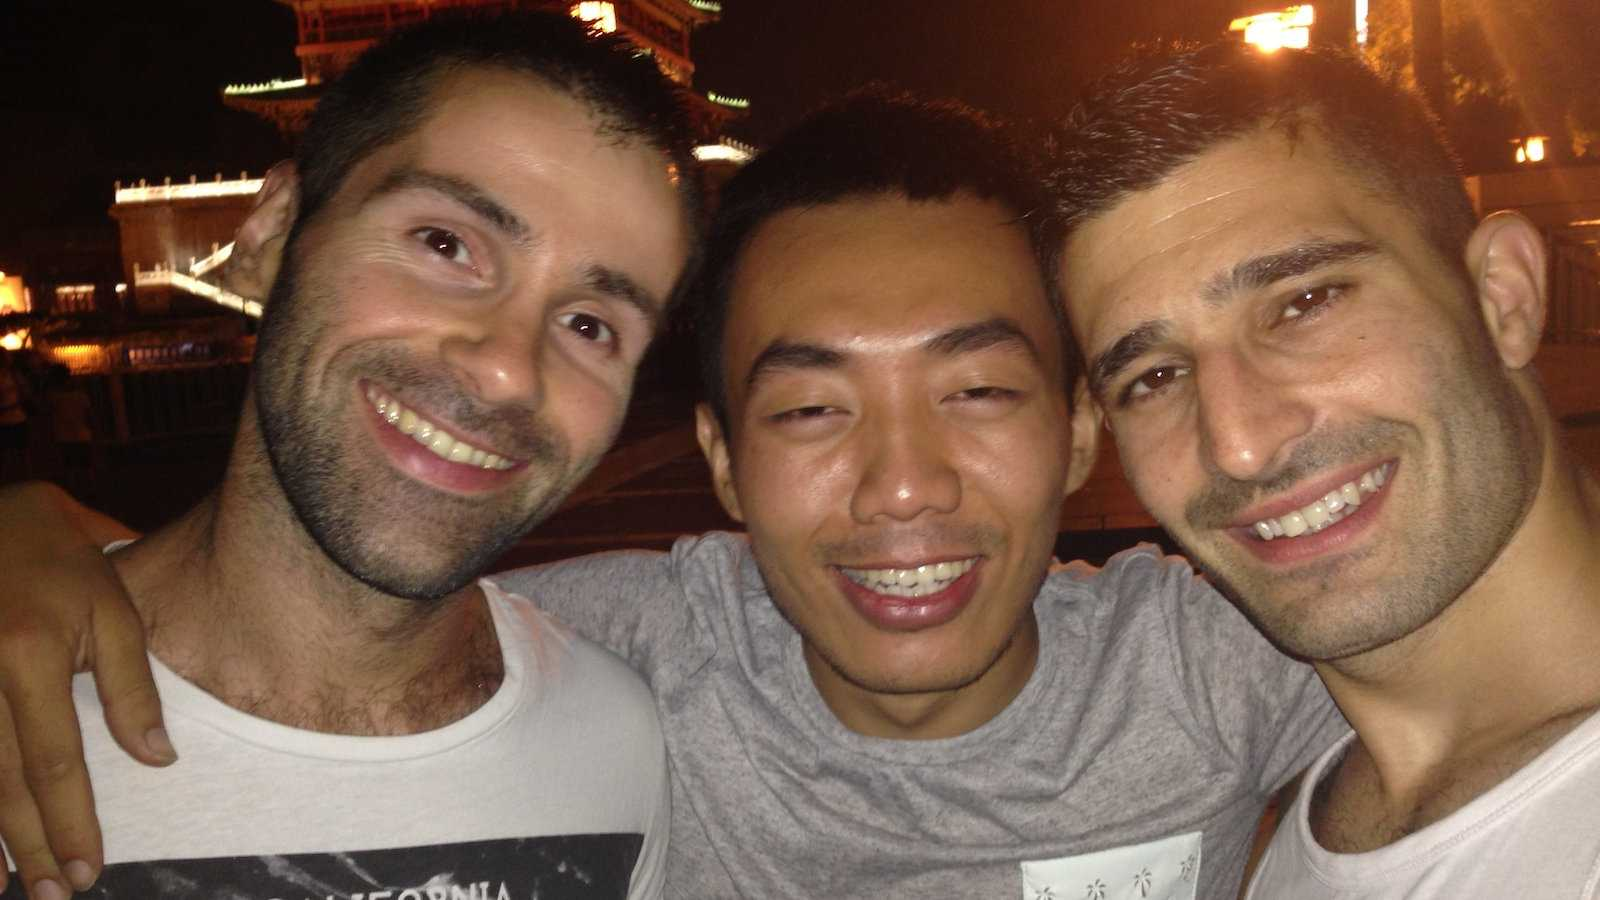 China is becoming more gay friendly, with pockets of fun to be found